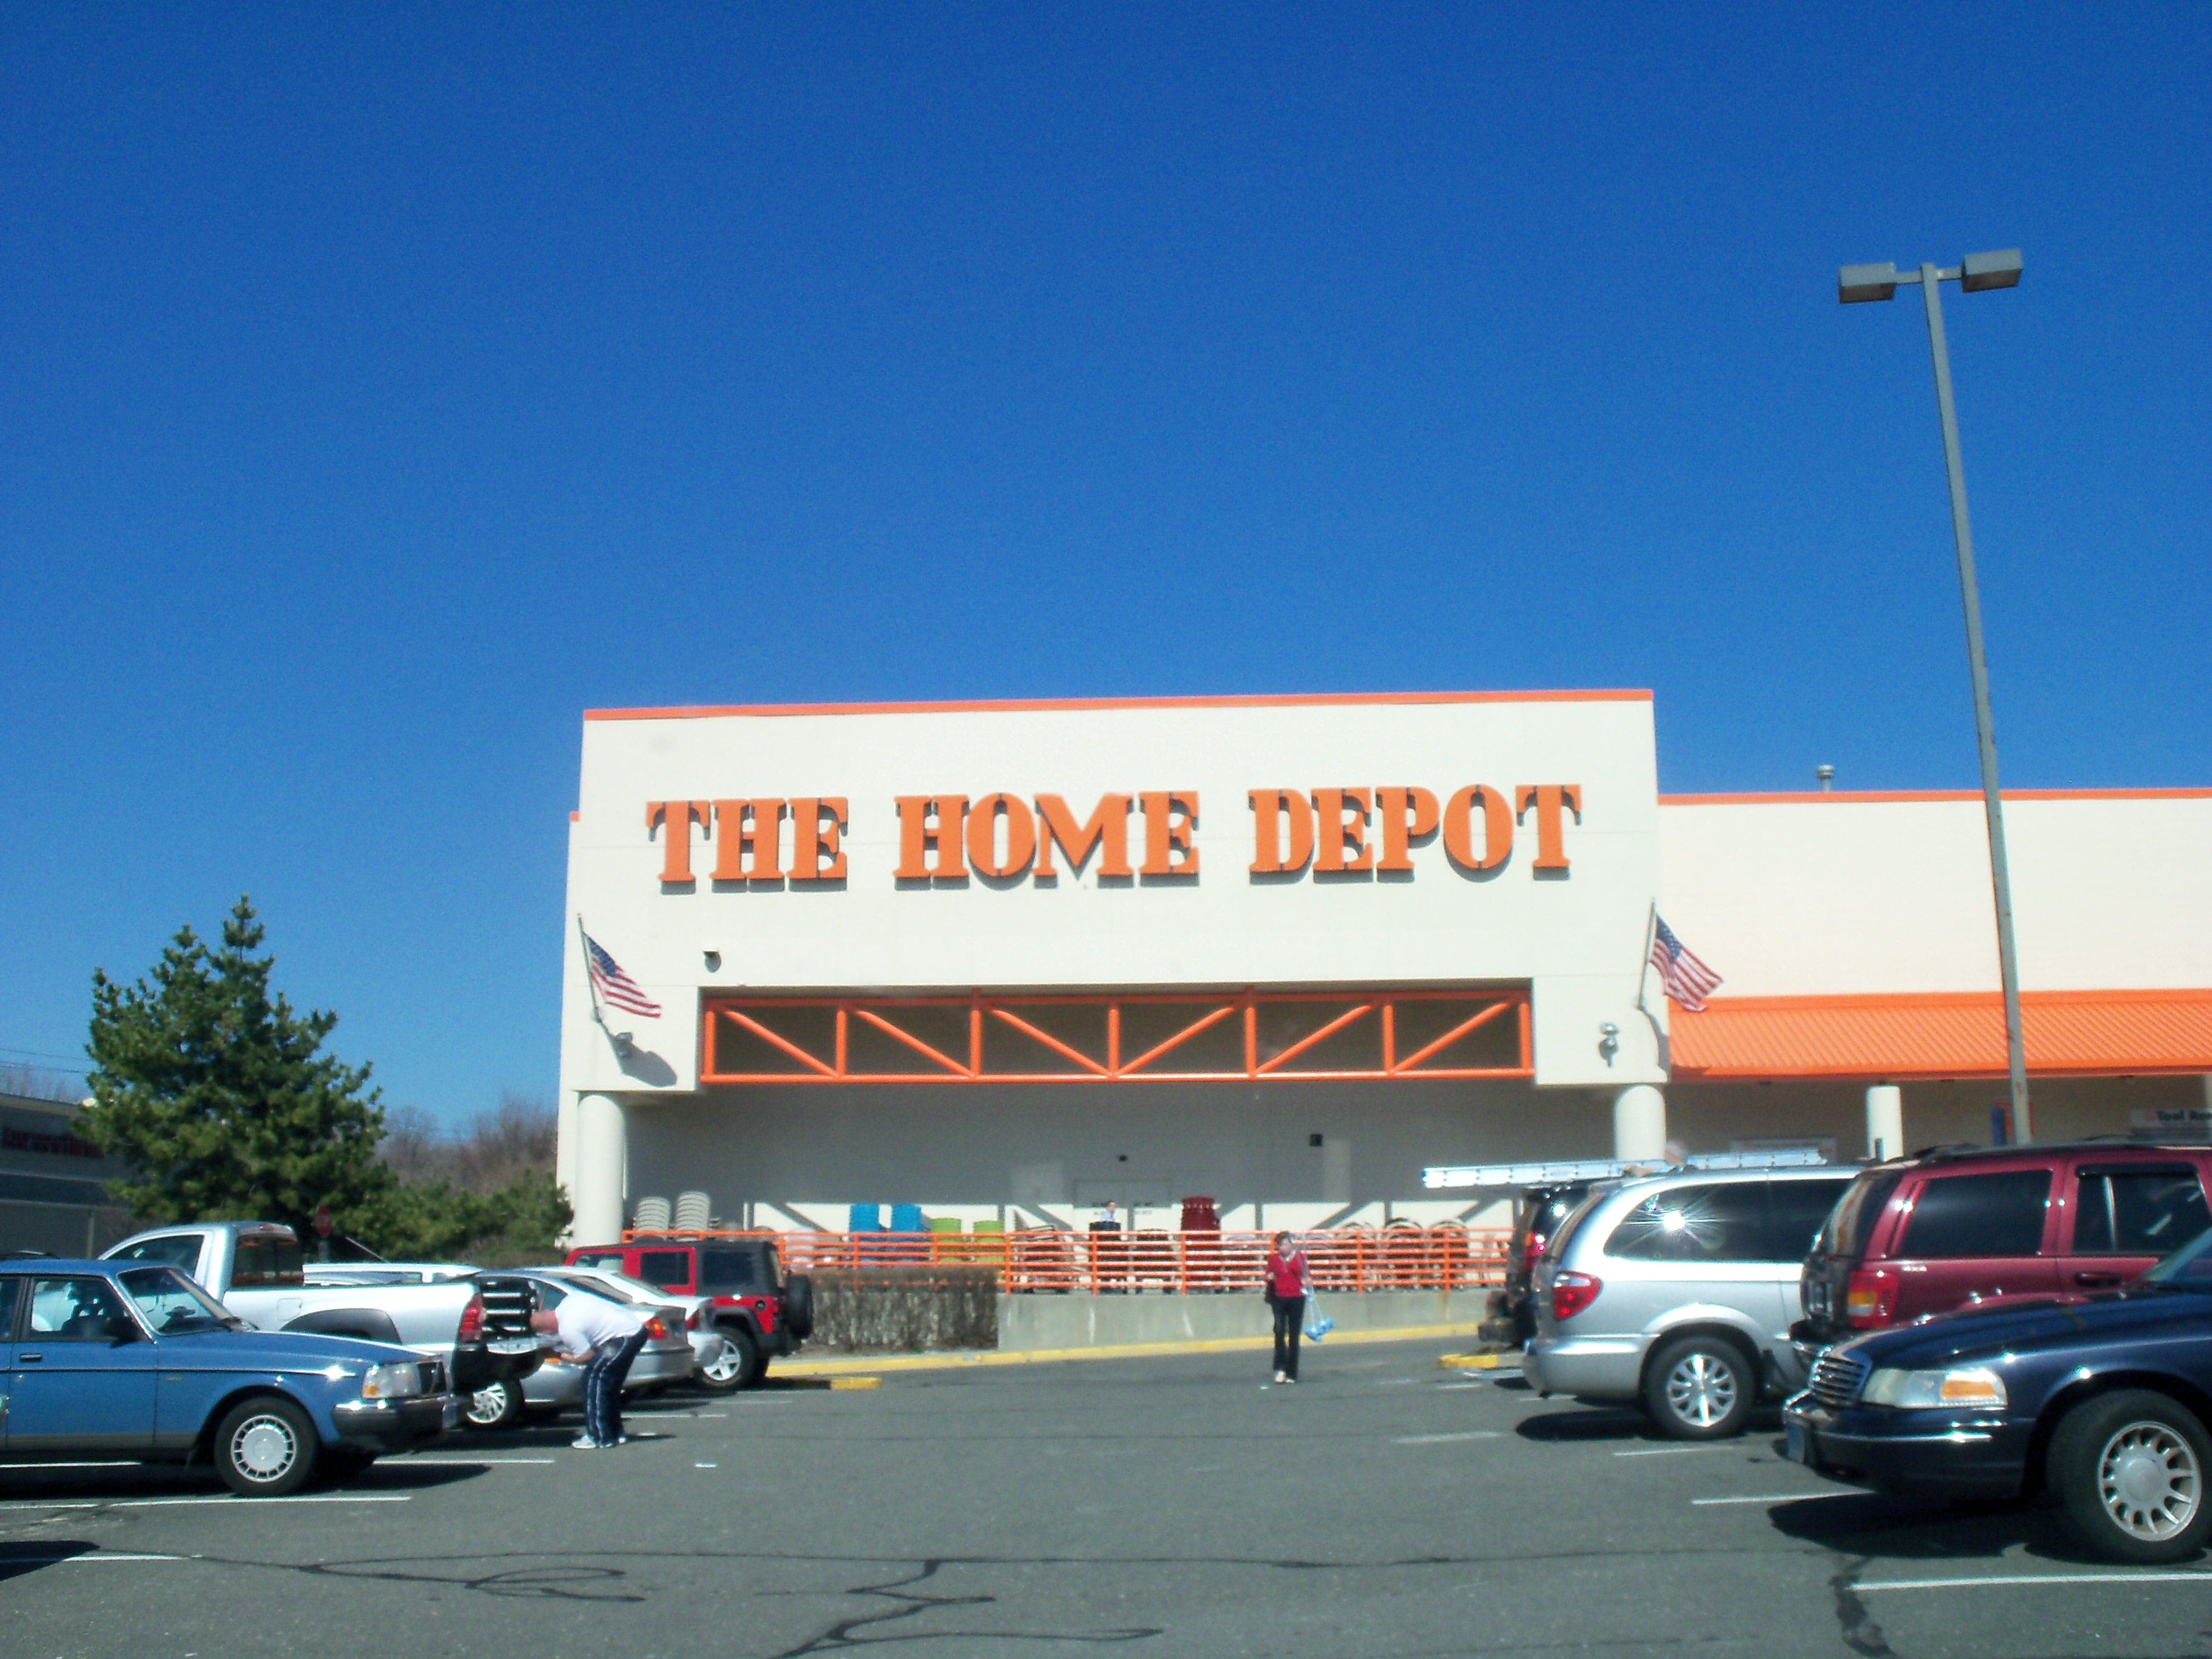 Cops Two Charged In Attempted Shoplifting At Home Depot Fairfield Ct Patch